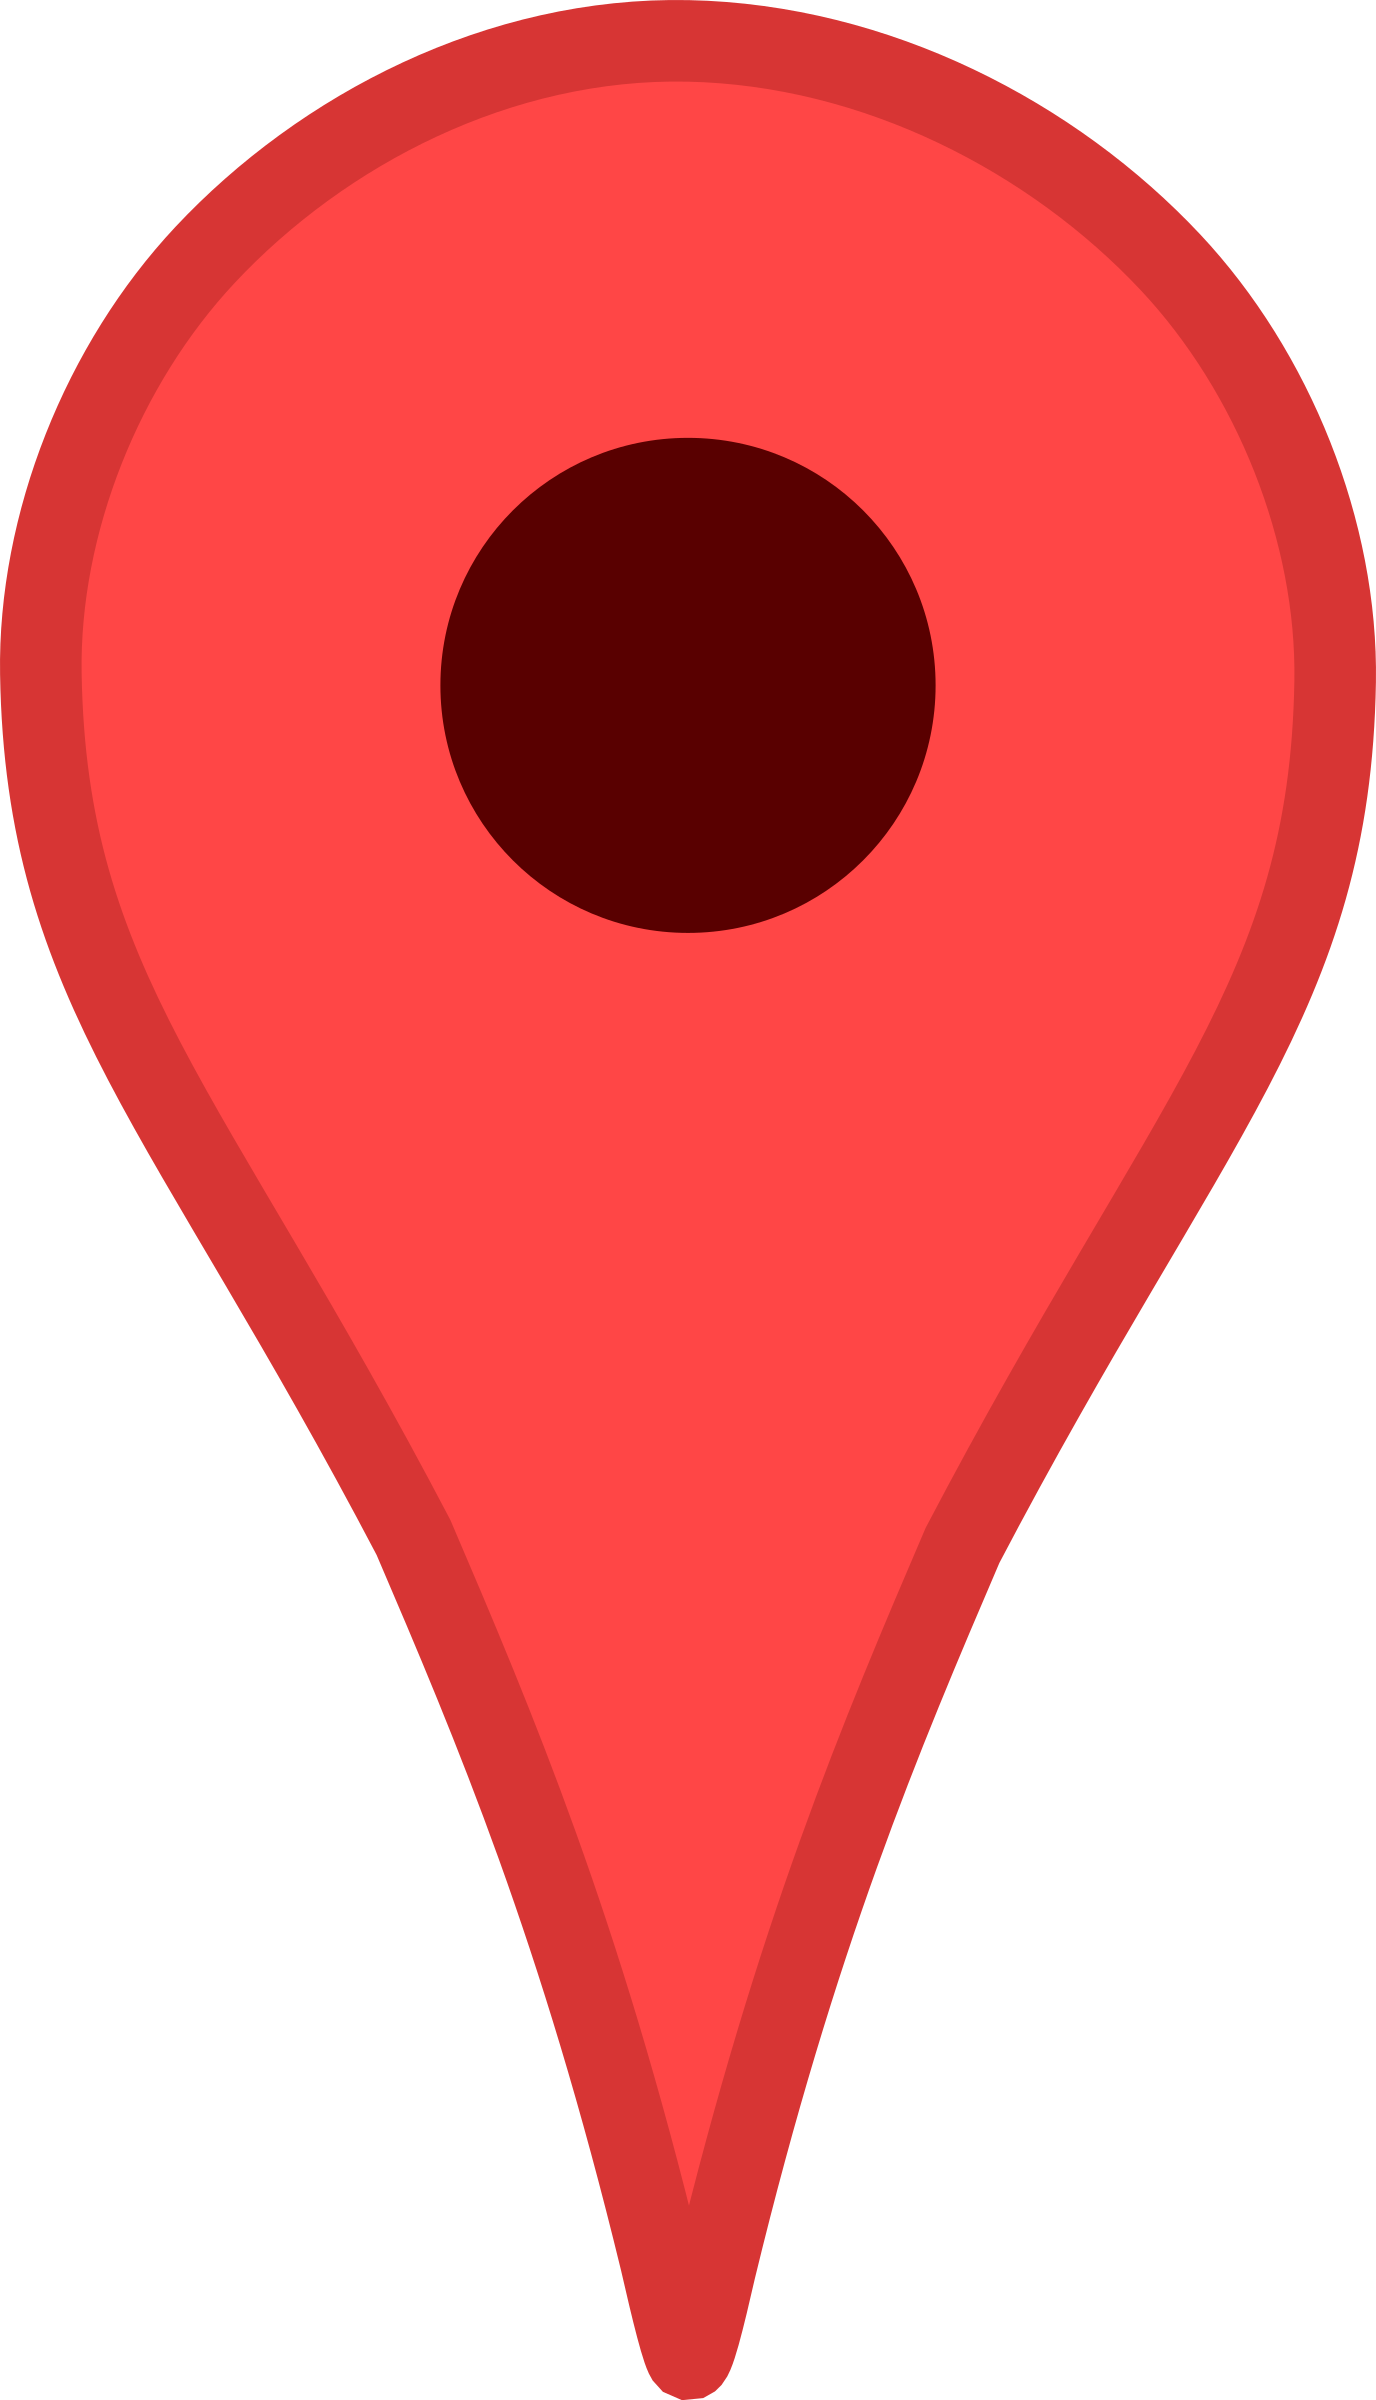 png transparent download Location free on dumielauxepices. Maps clipart.